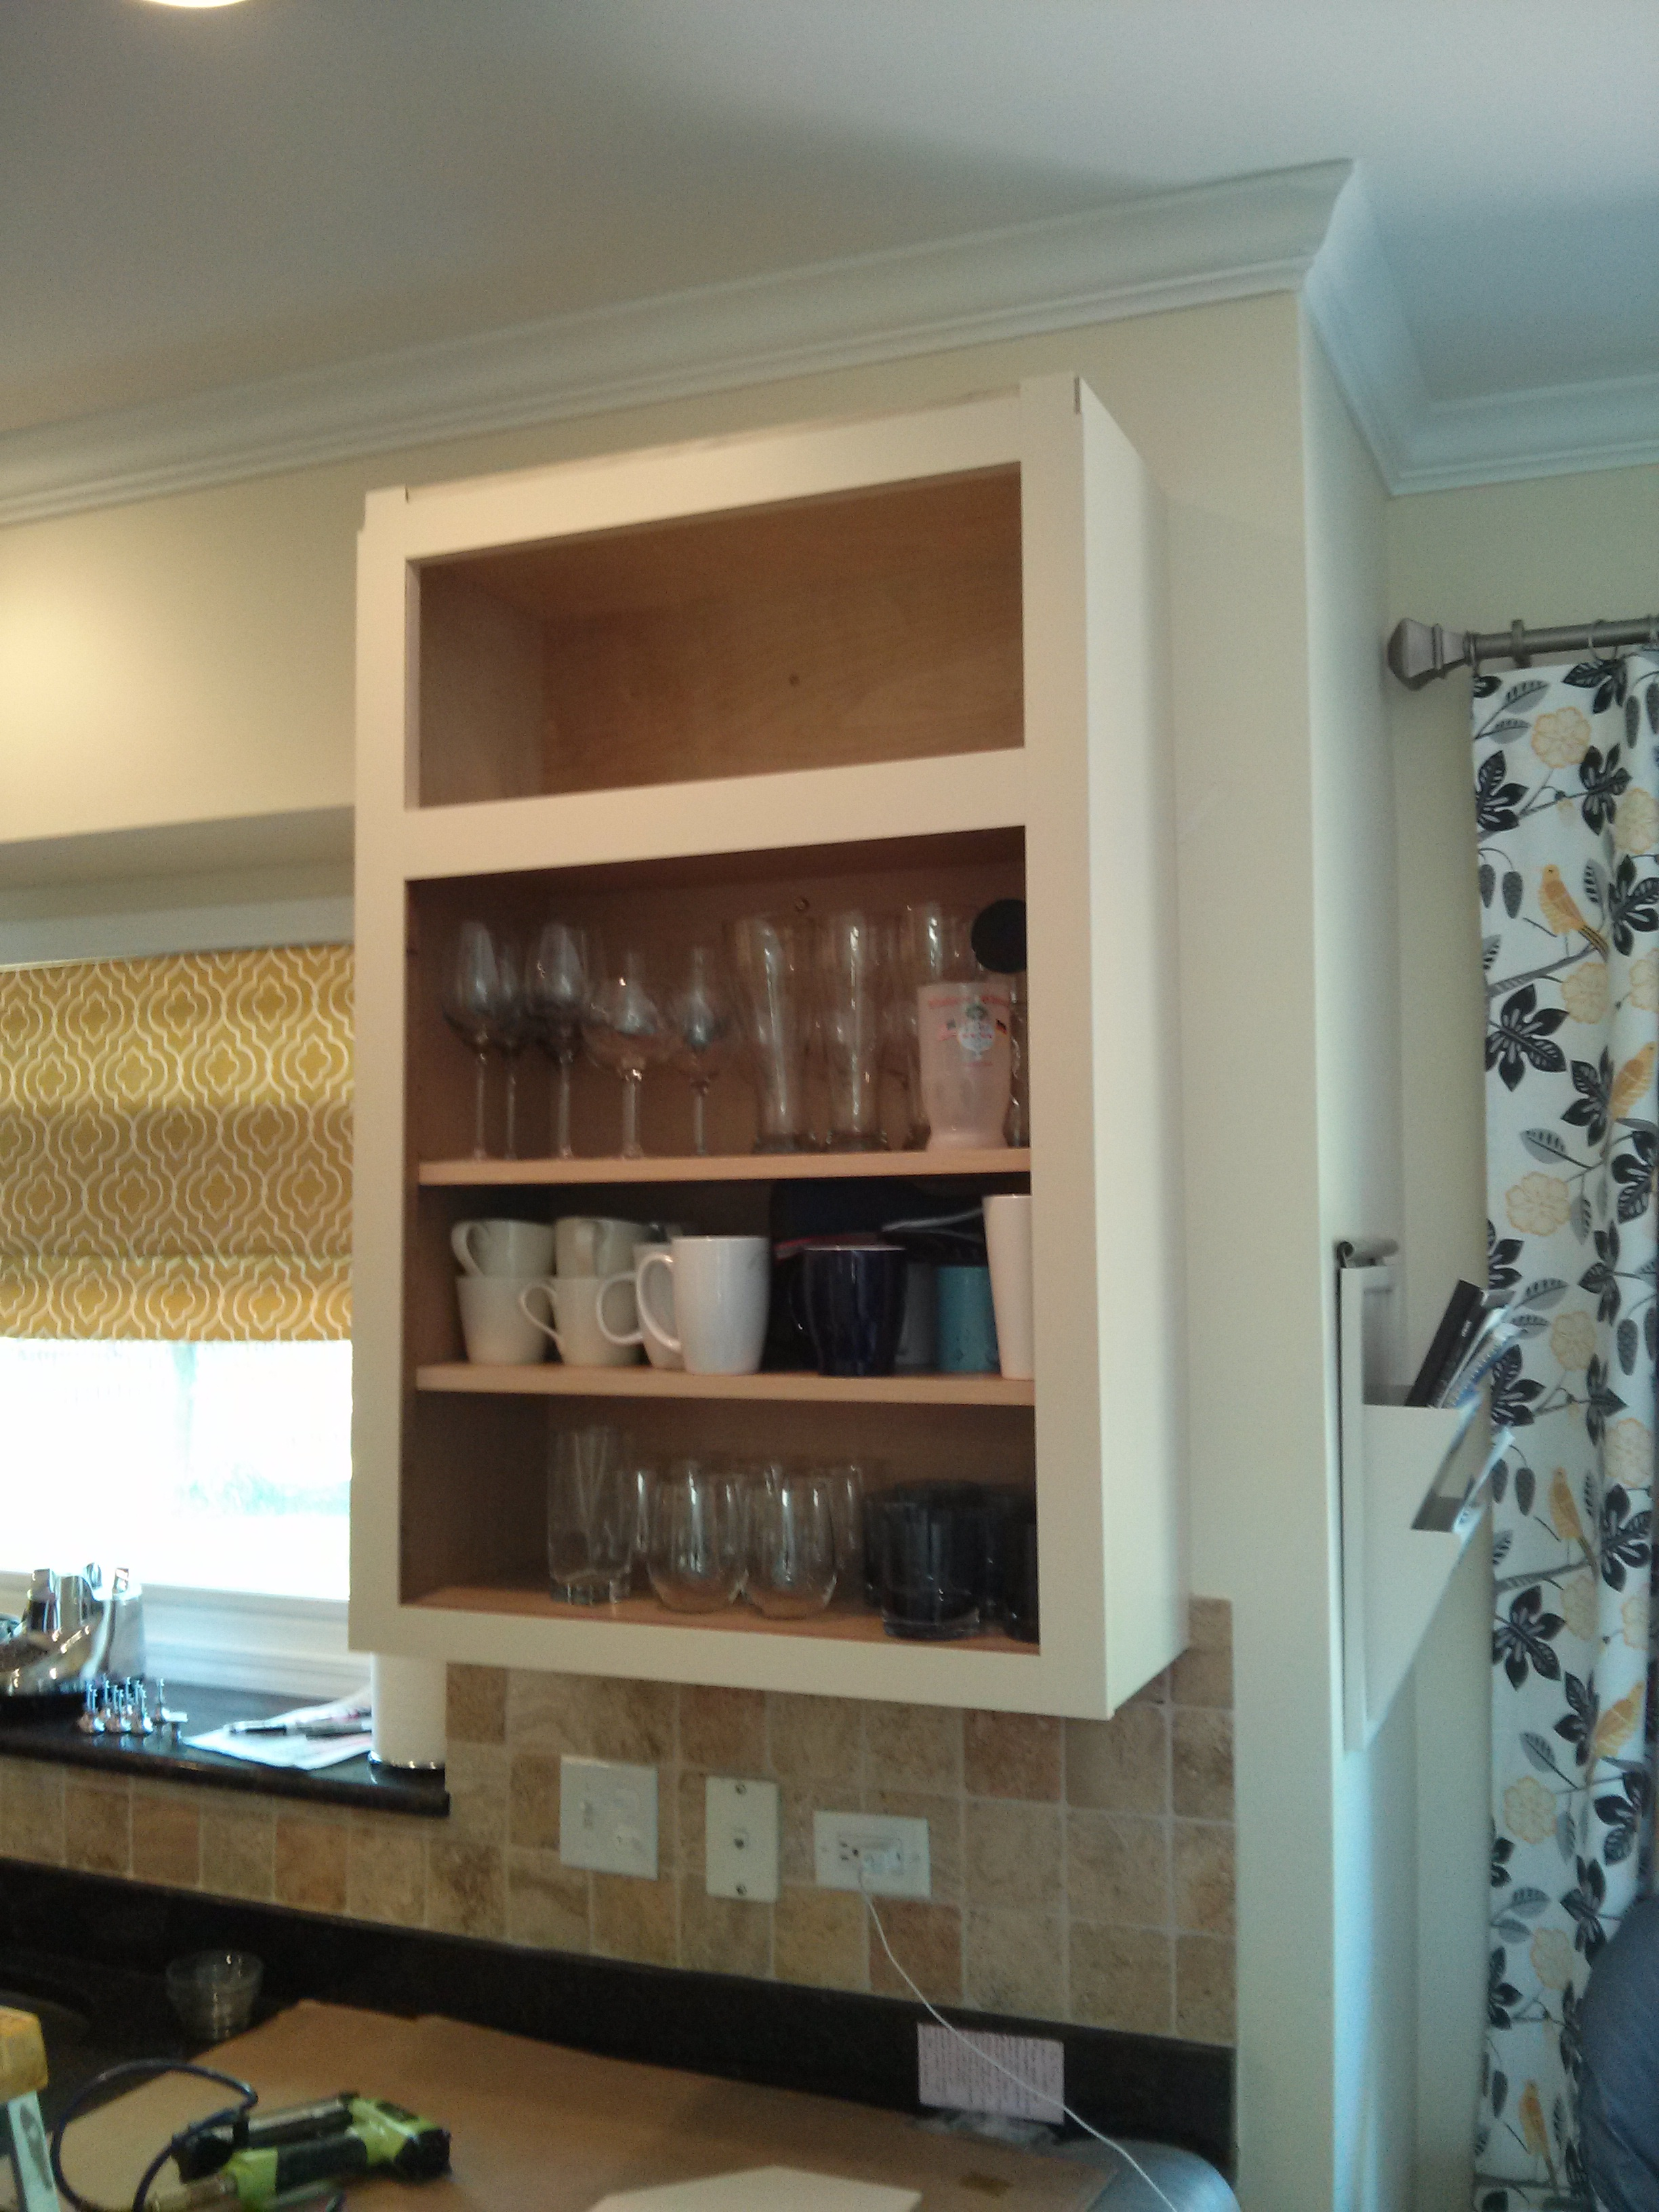 Kitchen Without Wall Cabinets : Step 3: The cabinet is now faced with solid 1/4″ maple to cover and ...